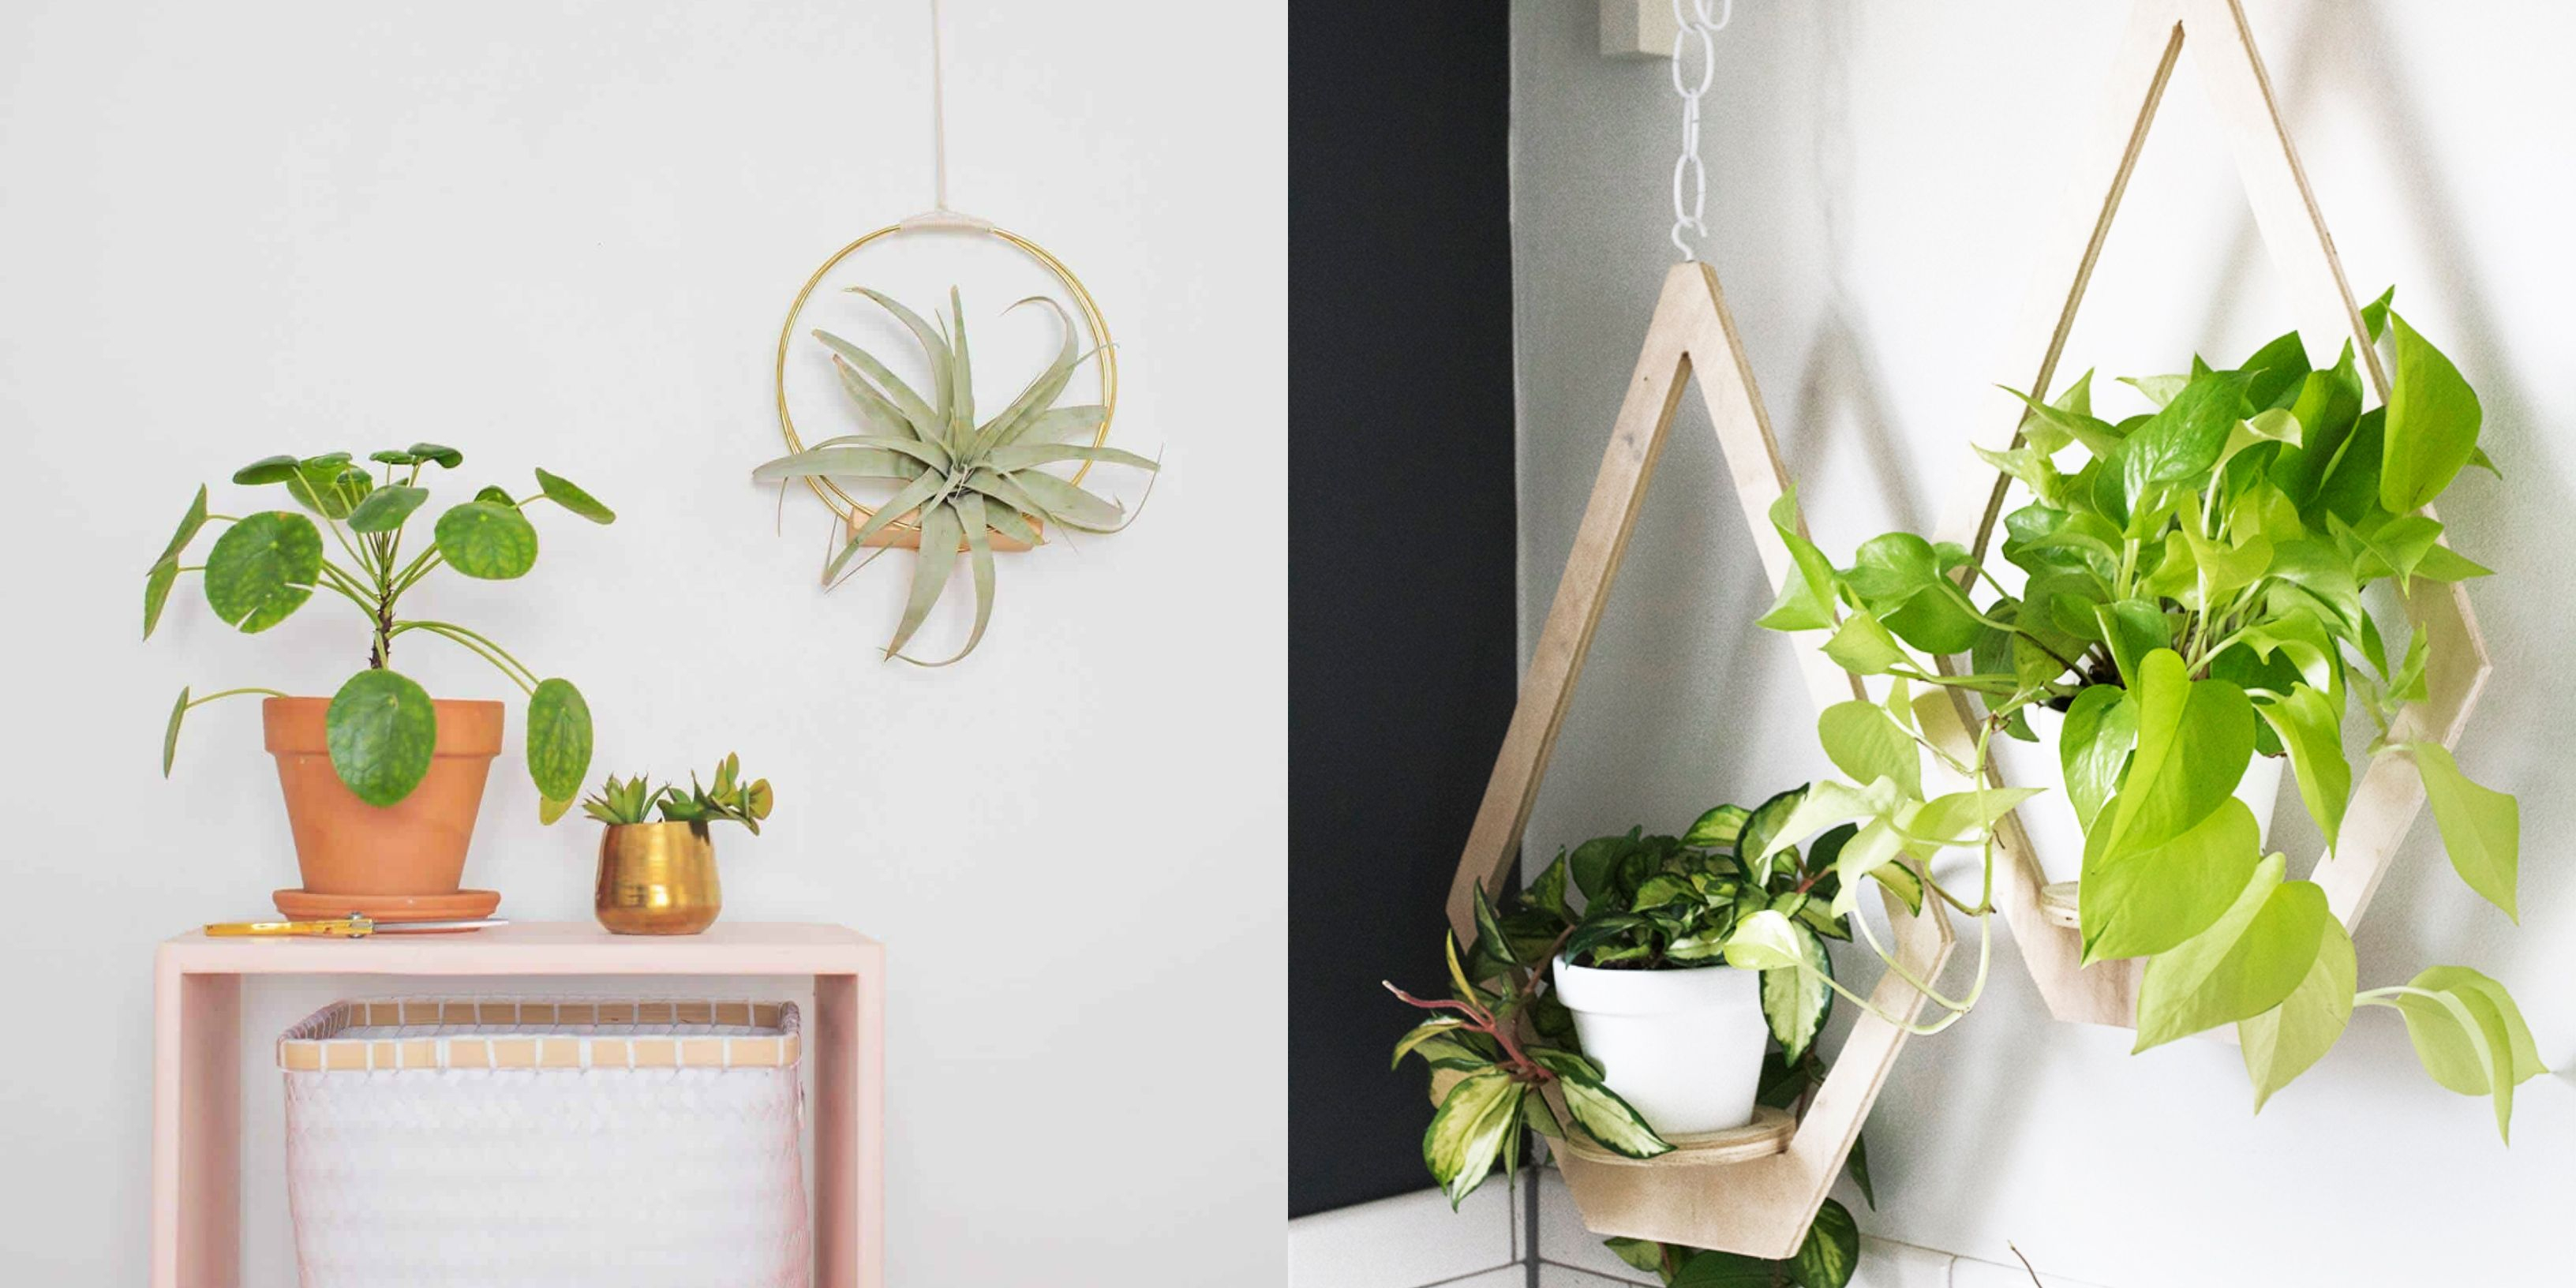 30+ Creative Ways To Plant A Vertical Garden – How To Make A Within Farm Metal Wall Rack And 3 Tin Pot With Hanger Wall Decor (View 16 of 30)